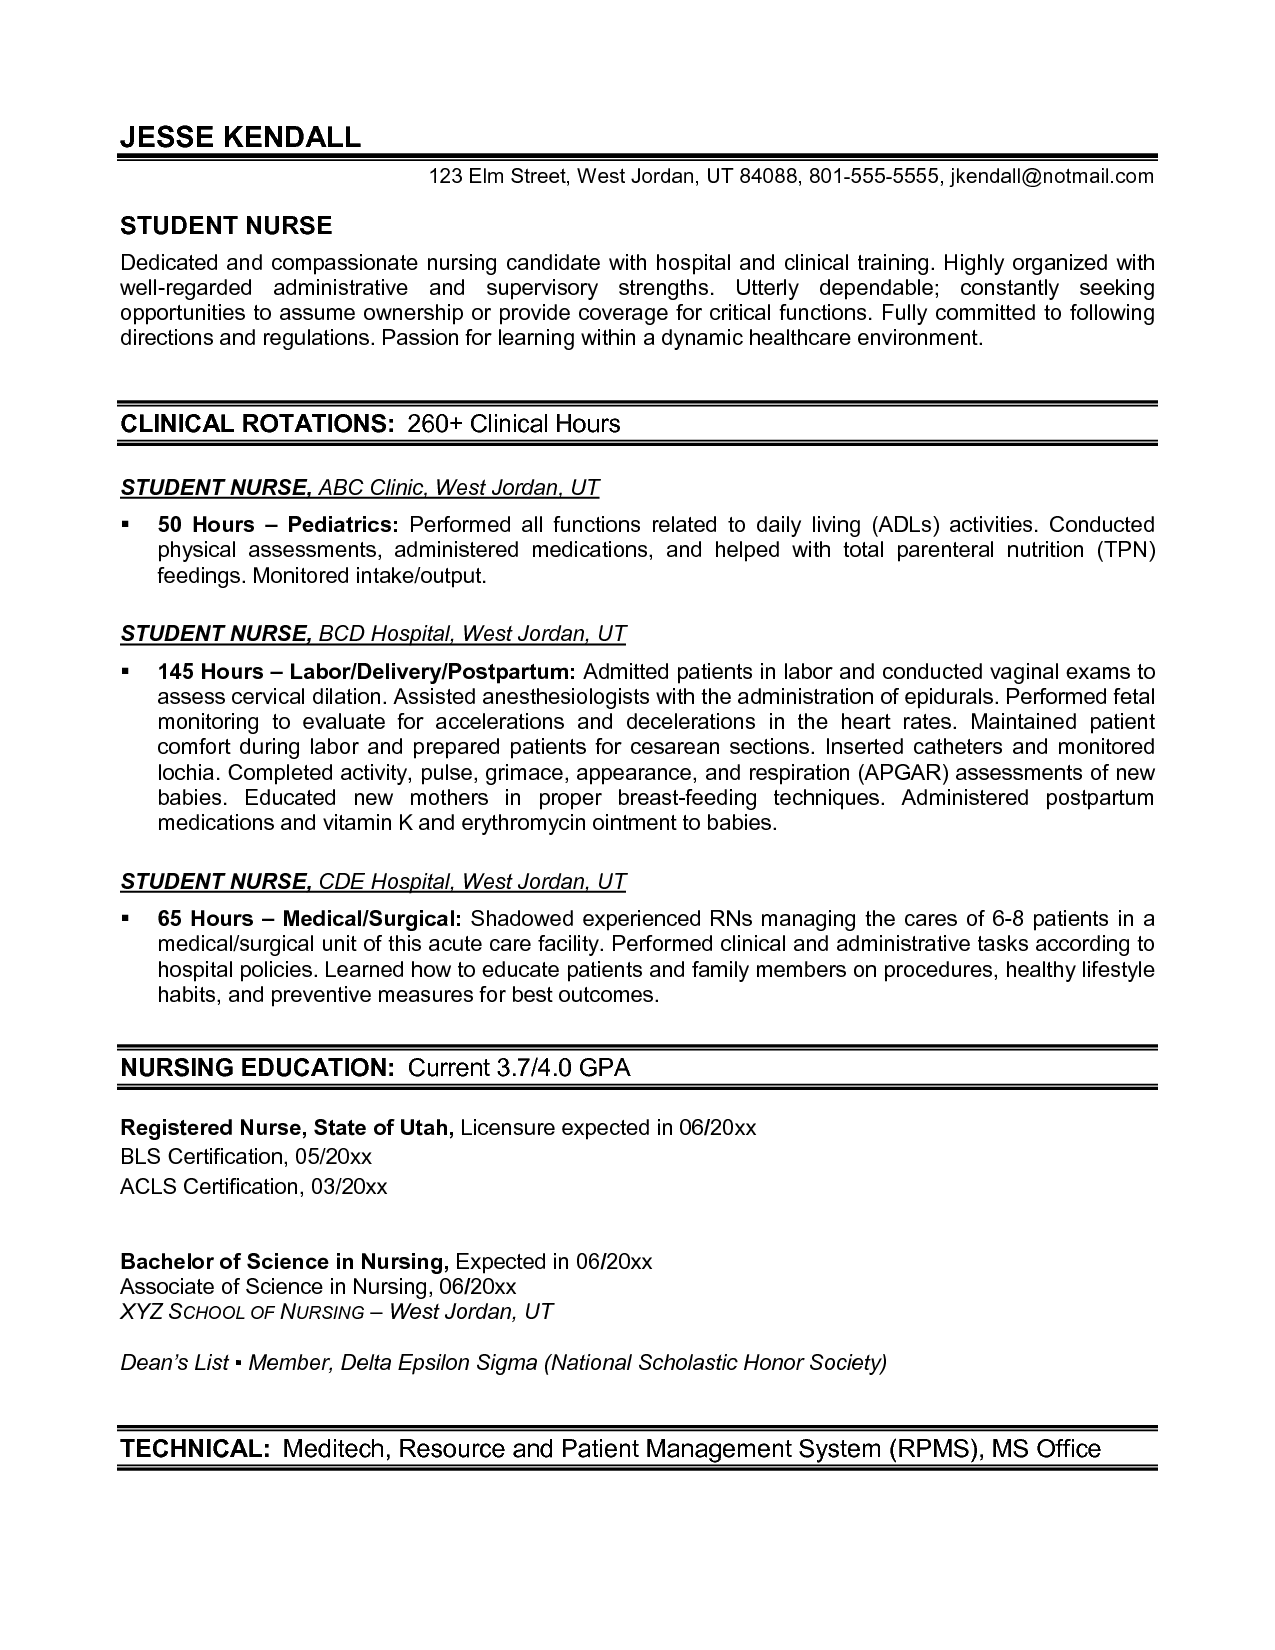 nursing resume template best templateresume templates cover letter examples. Resume Example. Resume CV Cover Letter